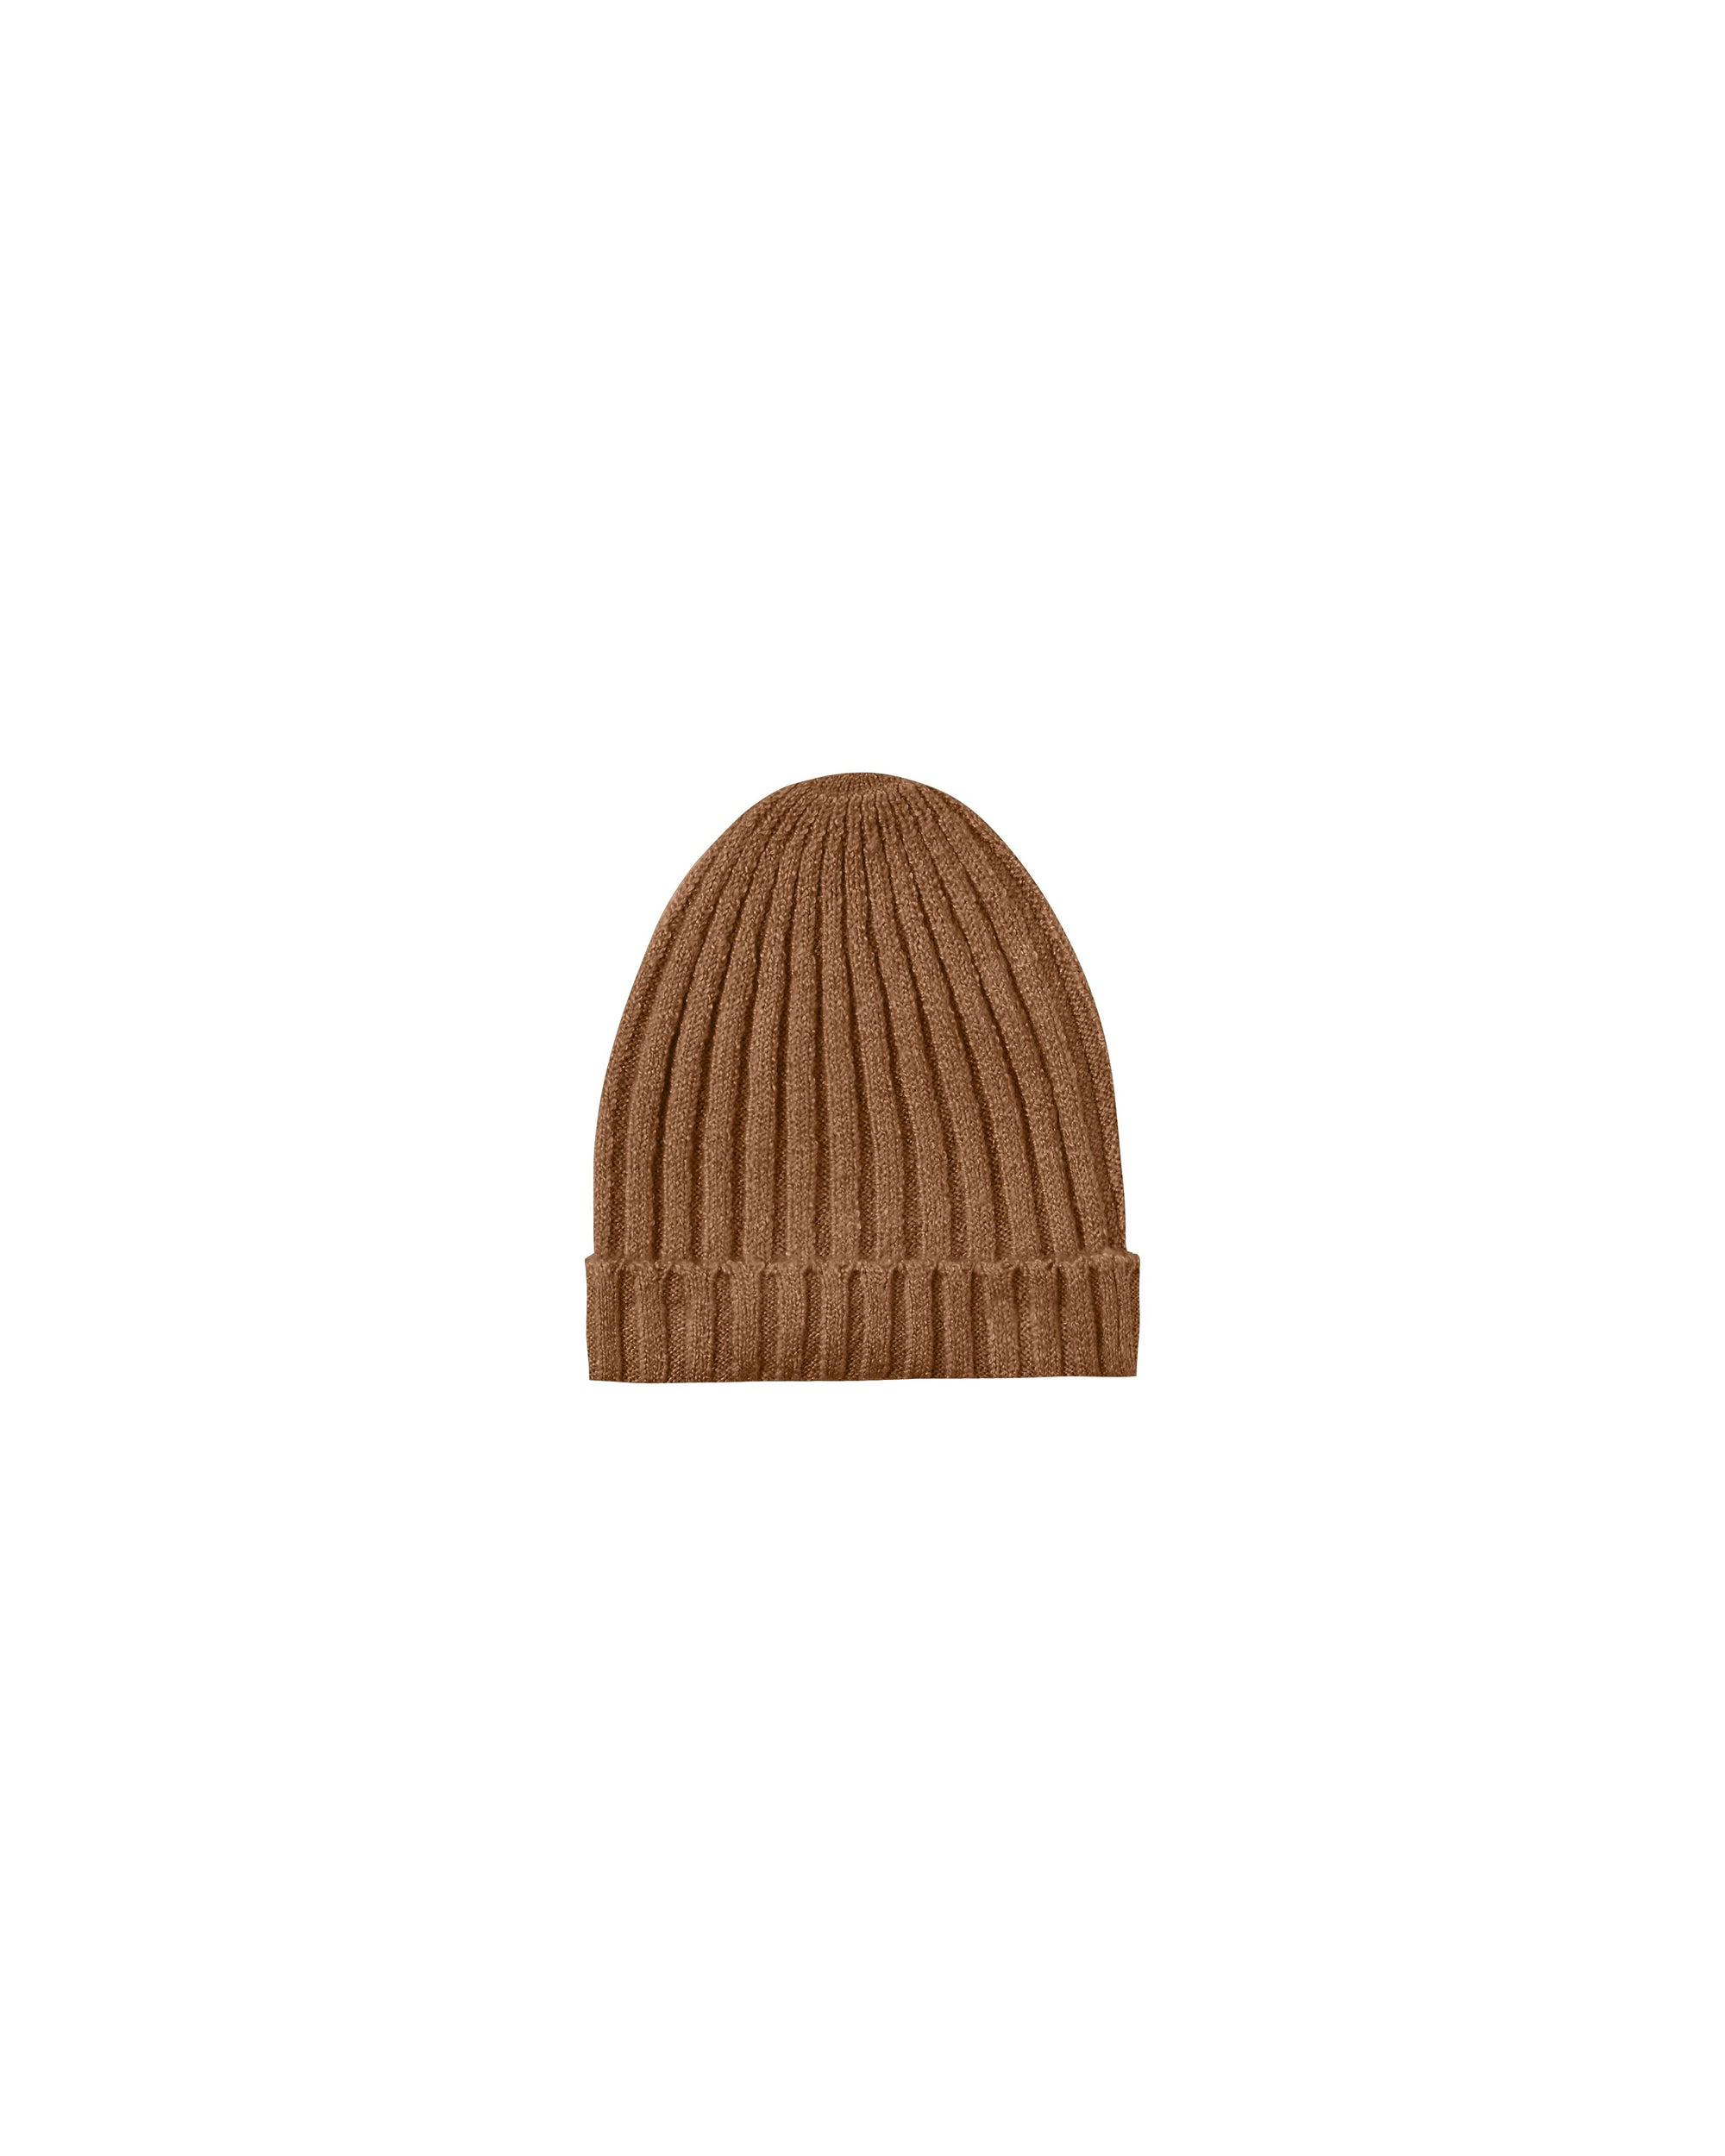 Rylee and Cru Adult Beanie